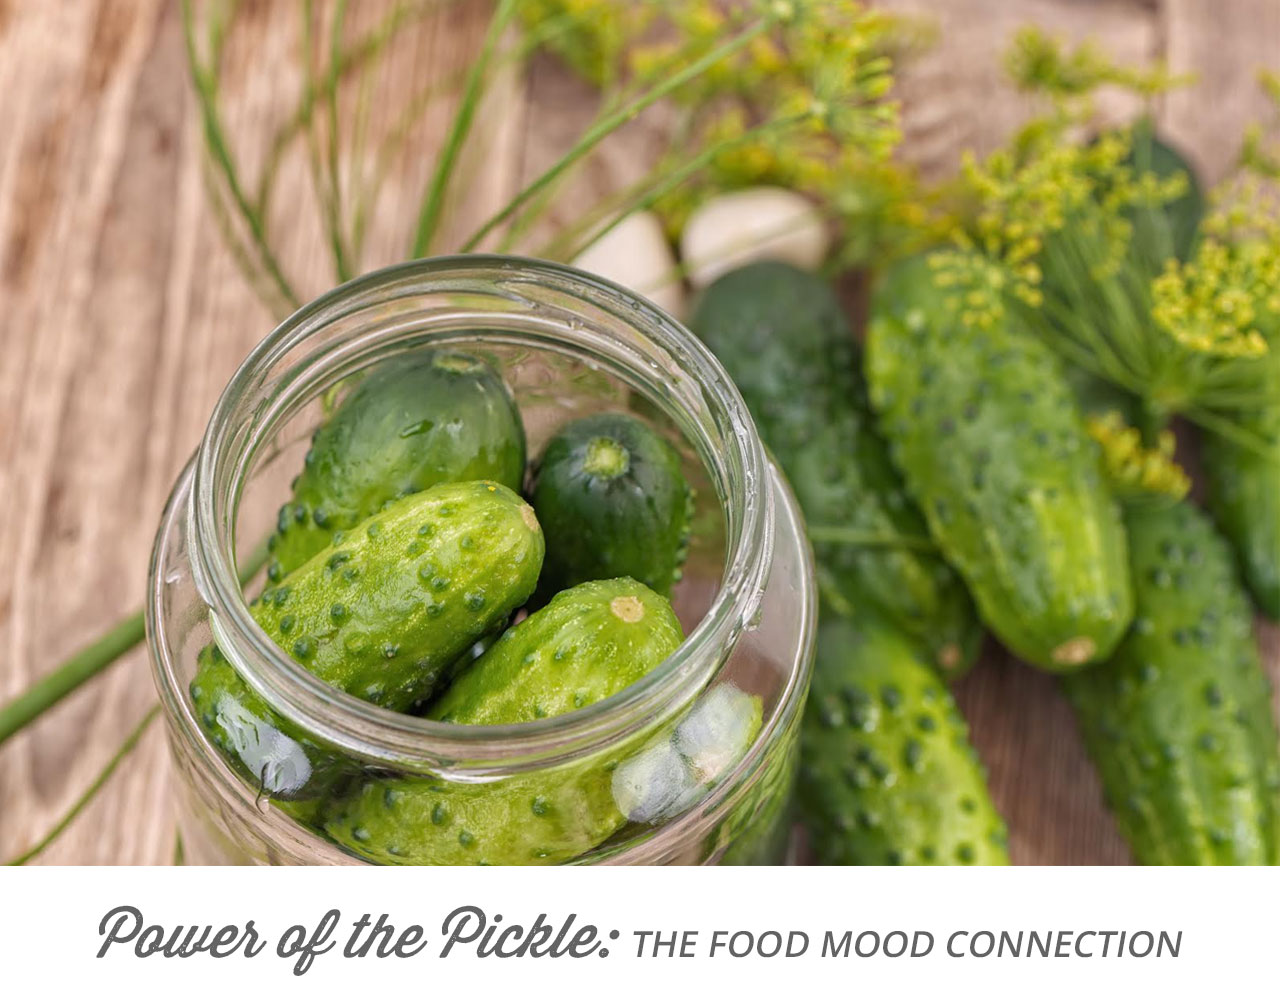 Power of the Pickle: The Food Mood Connection